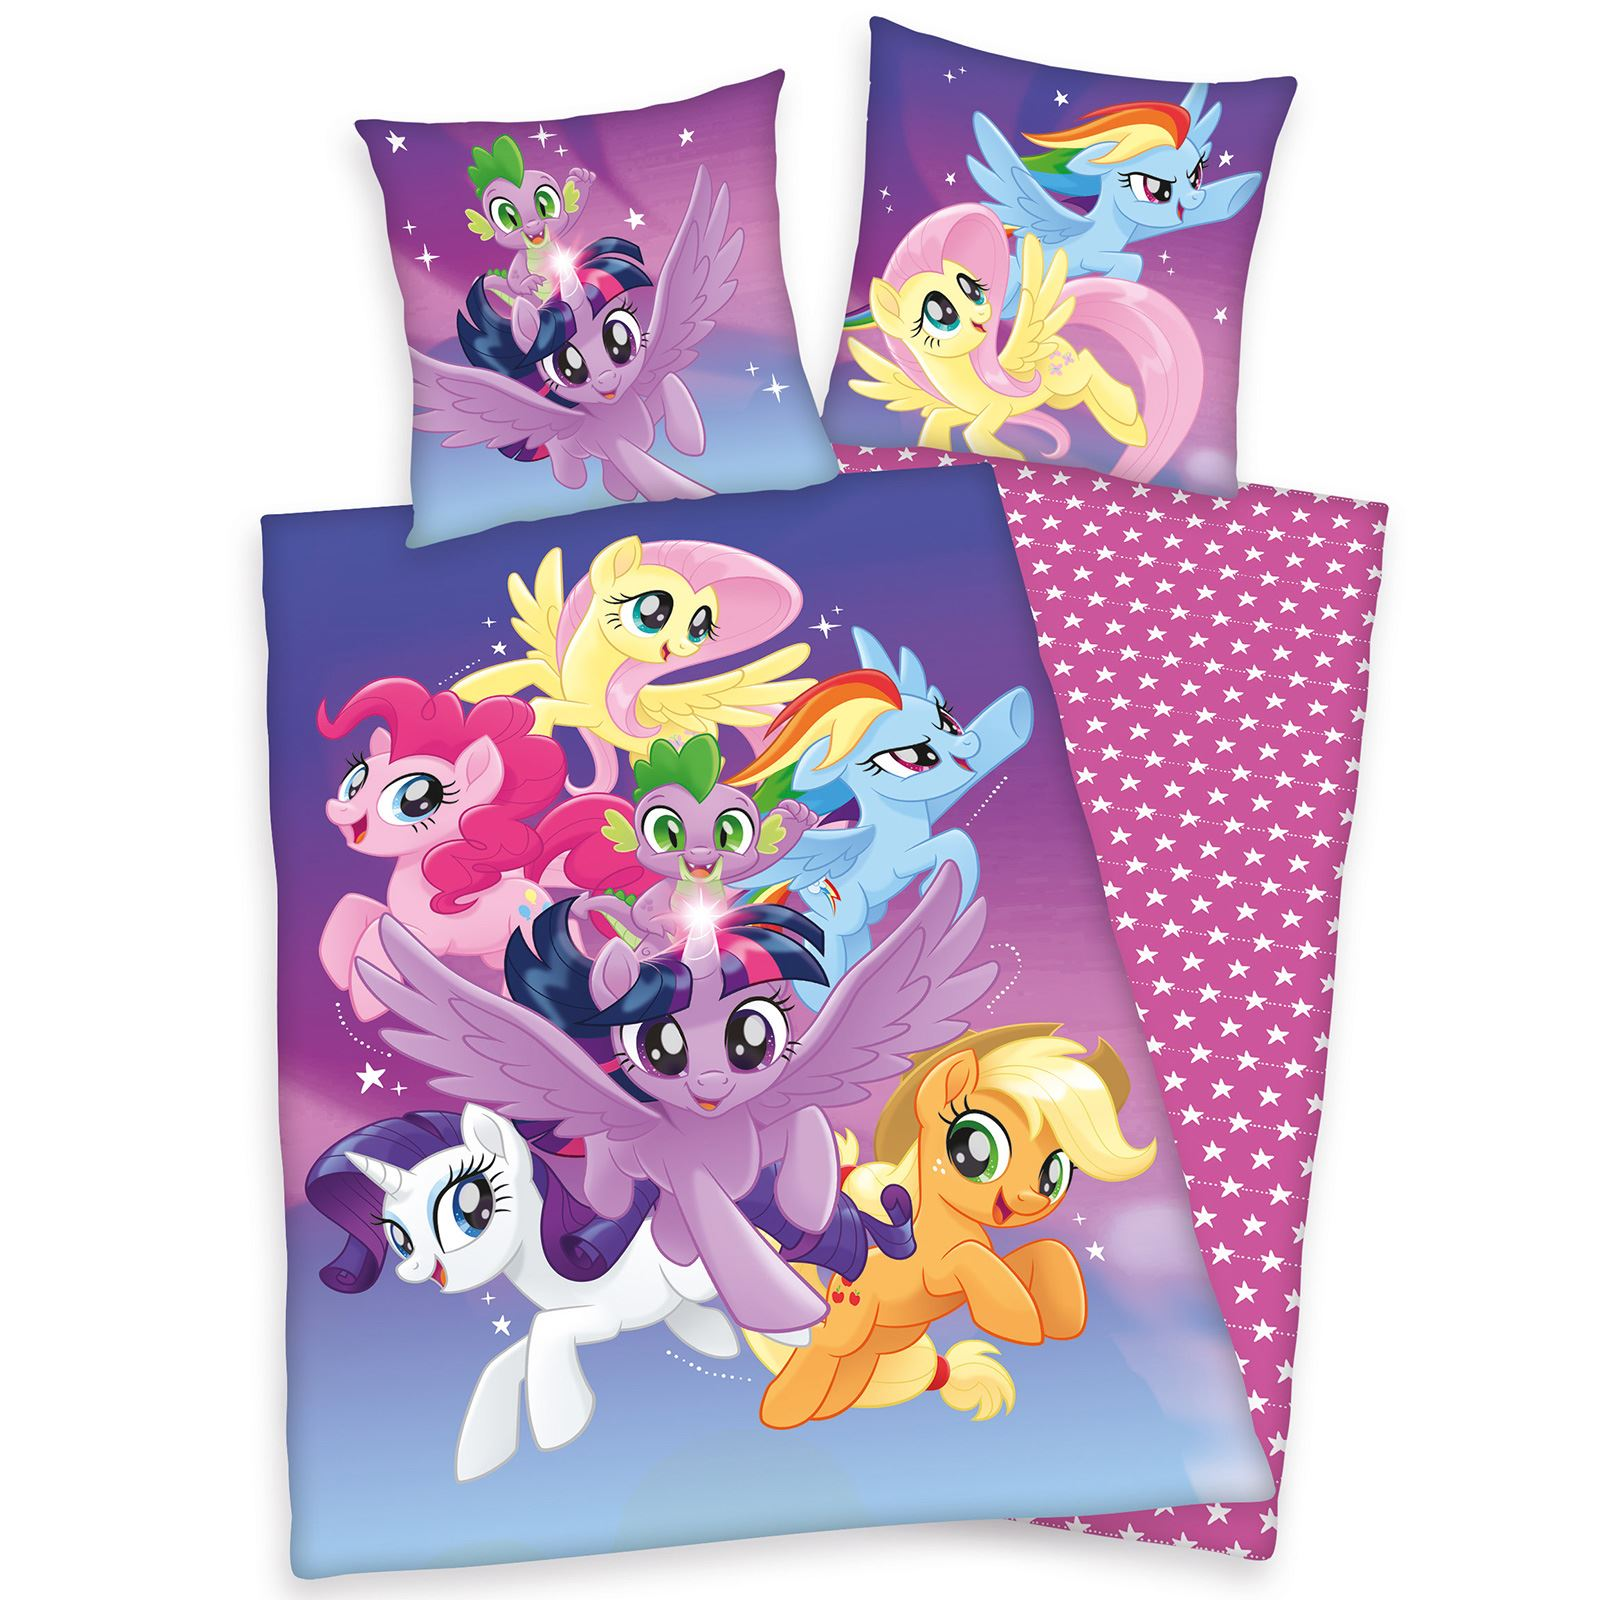 GIRLS-SINGLE-PANEL-DUVET-COVER-SET-KIDS-TROLLS-LADYBUG-PONY-PRINCESS-amp-MORE